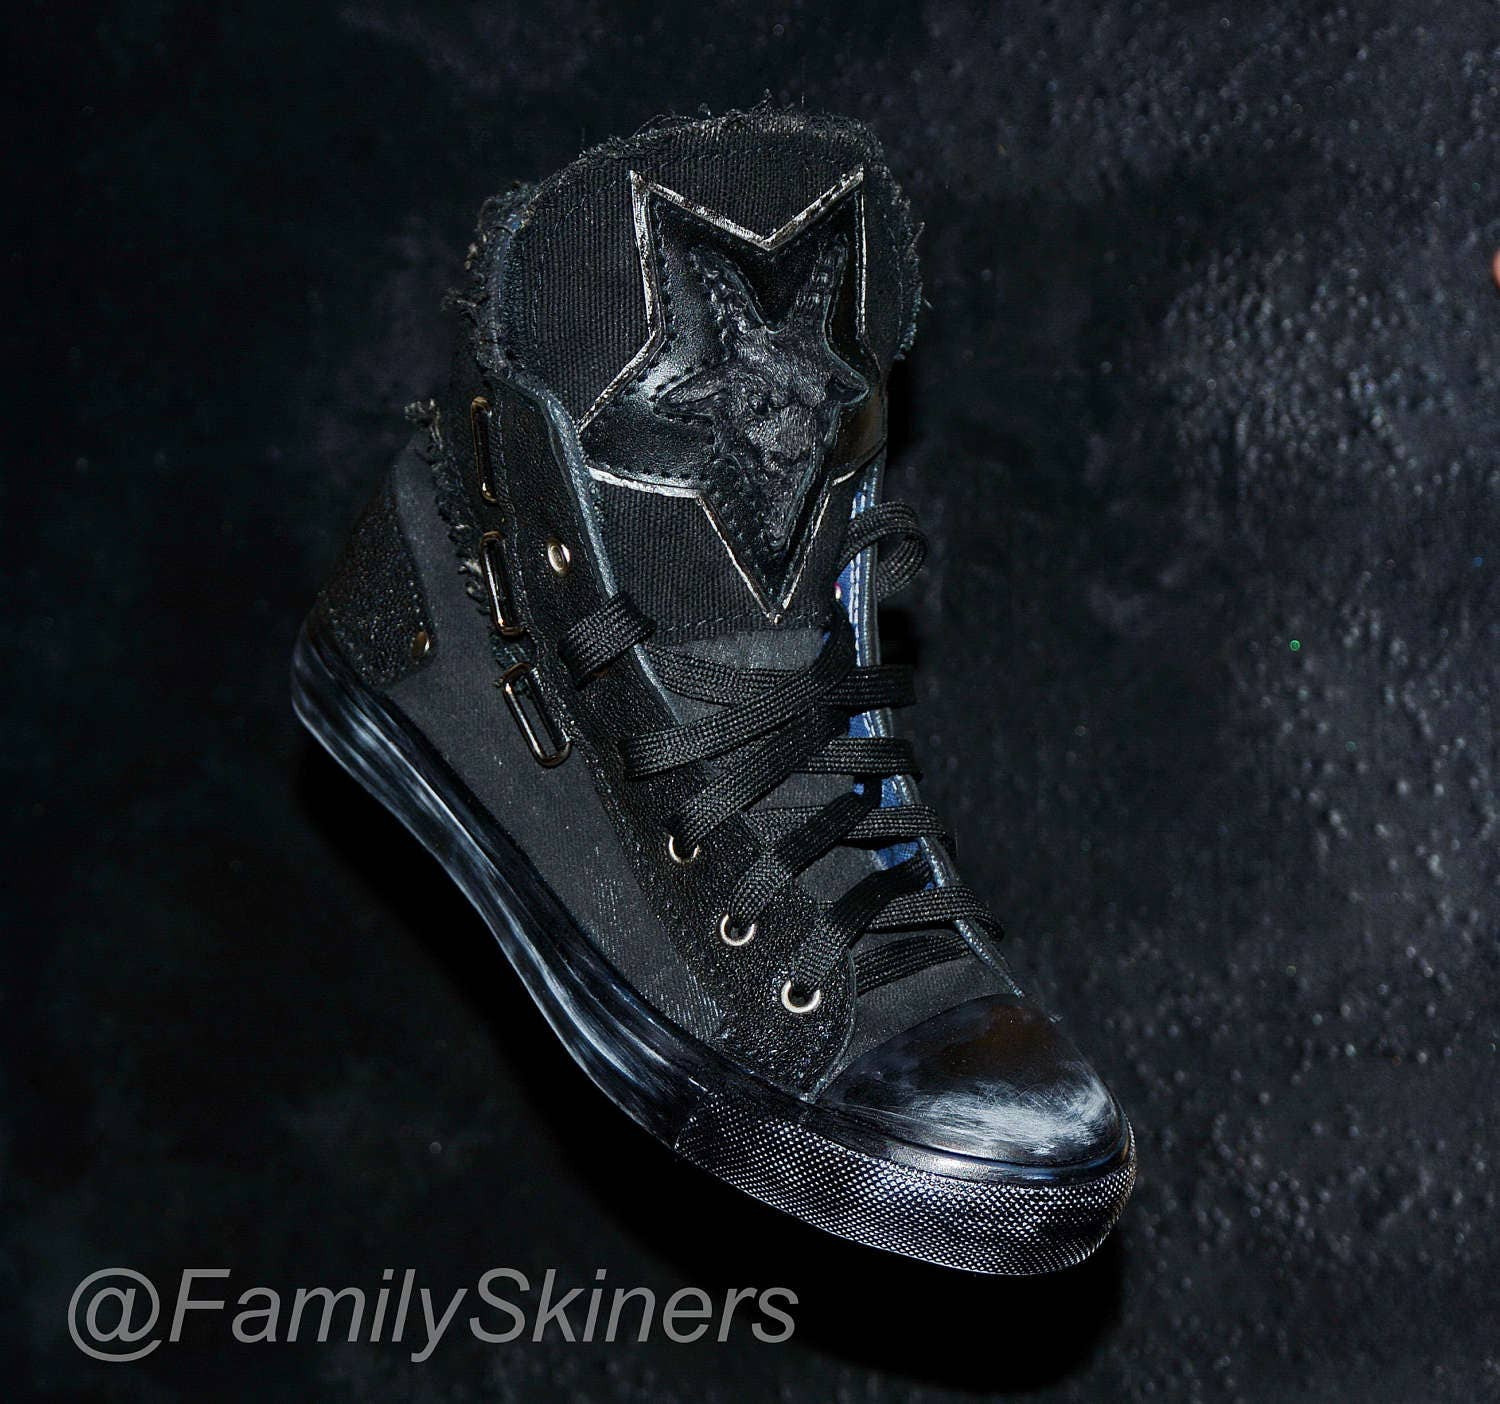 GOTHIC CUSTOM / SNEAKERS / Personal order / CUSTOM Gothic shoes - Wicca - Baphomet - Demon - Wiccan Pagan Occult Esoteric Inverted pentagram - Witch 2a5f04